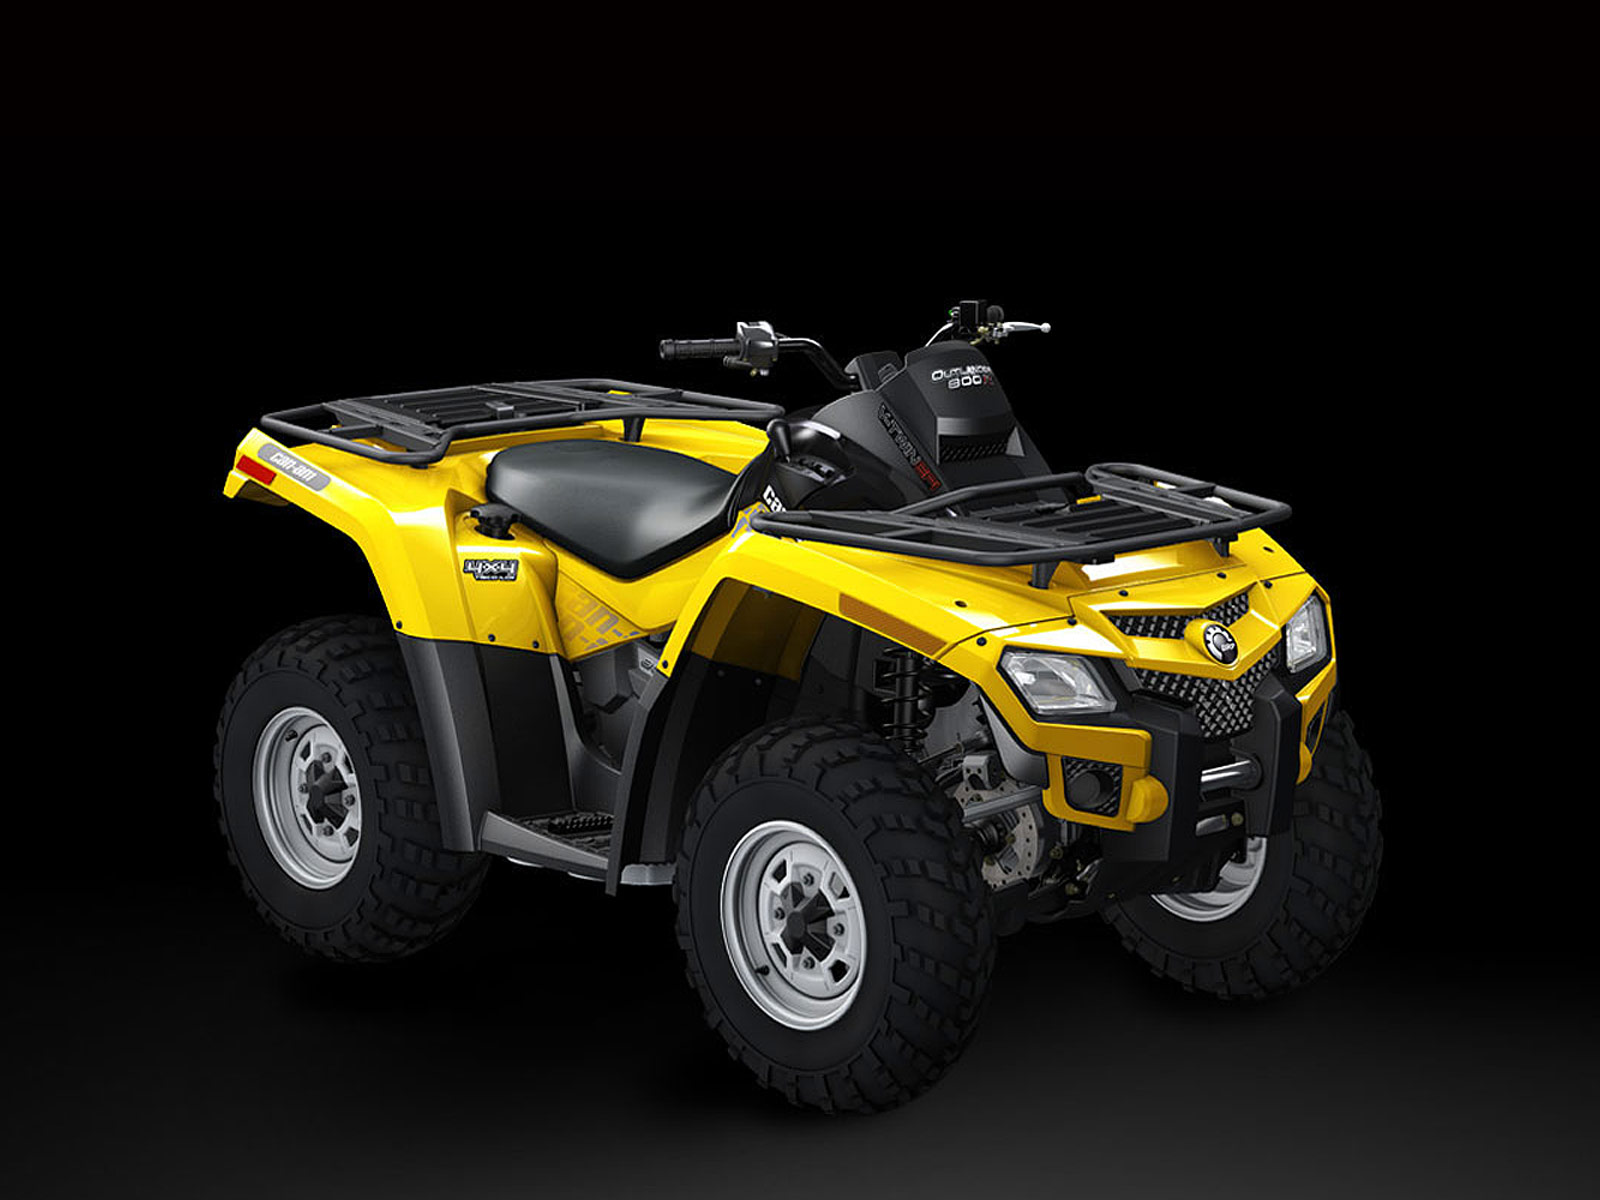 polaris ranger 500 efi wiring diagram images brute force 750 wiring diagram kawasaki bayou 220 wiring diagram